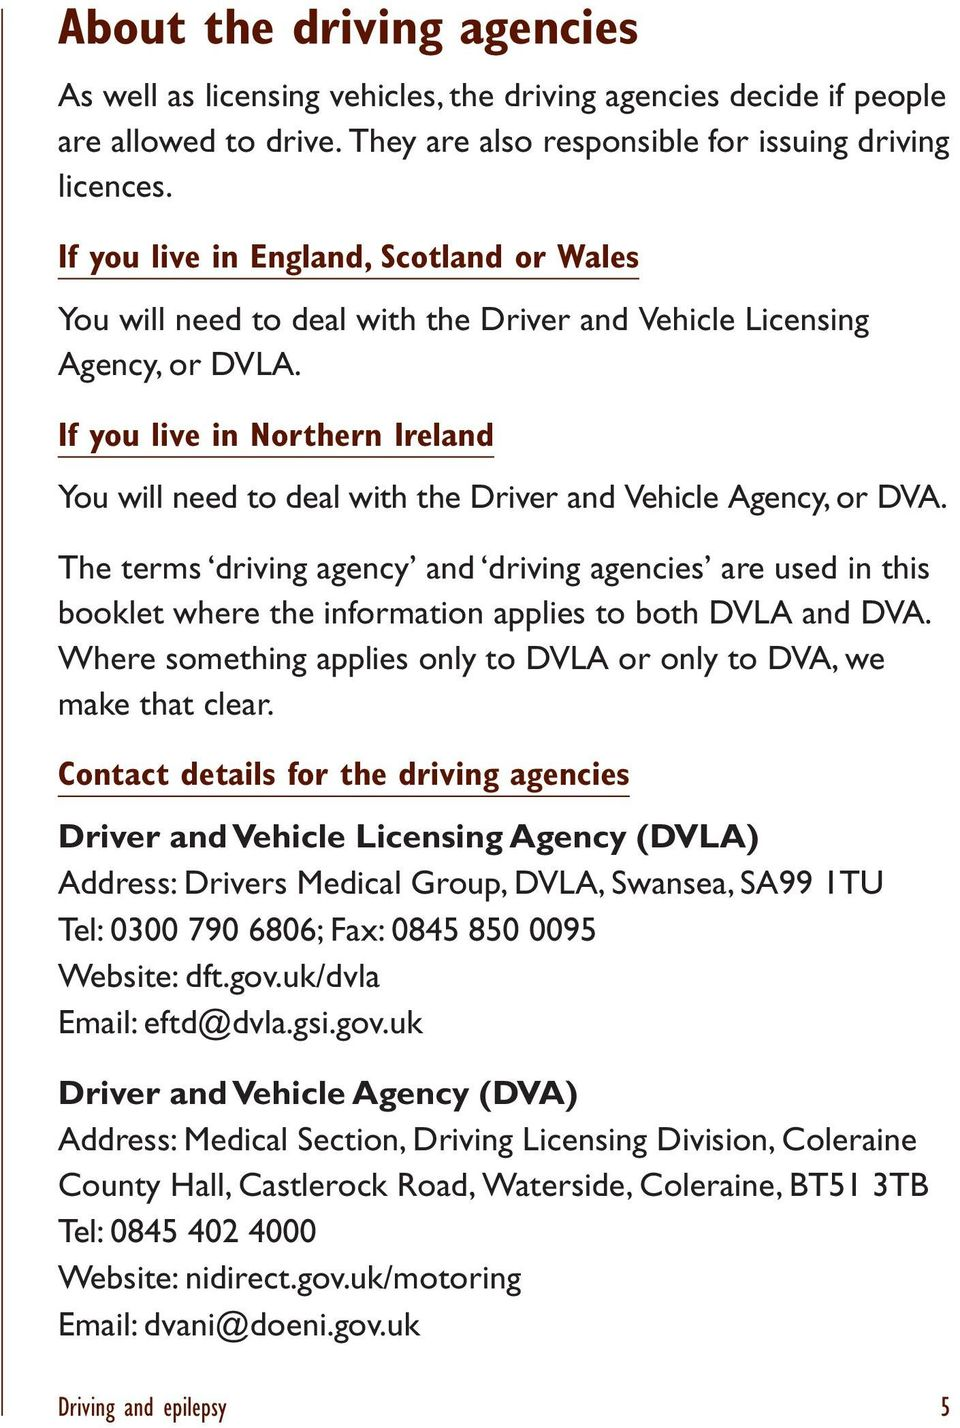 If you live in Northern Ireland You will need to deal with the Driver and Vehicle Agency, or DVA.